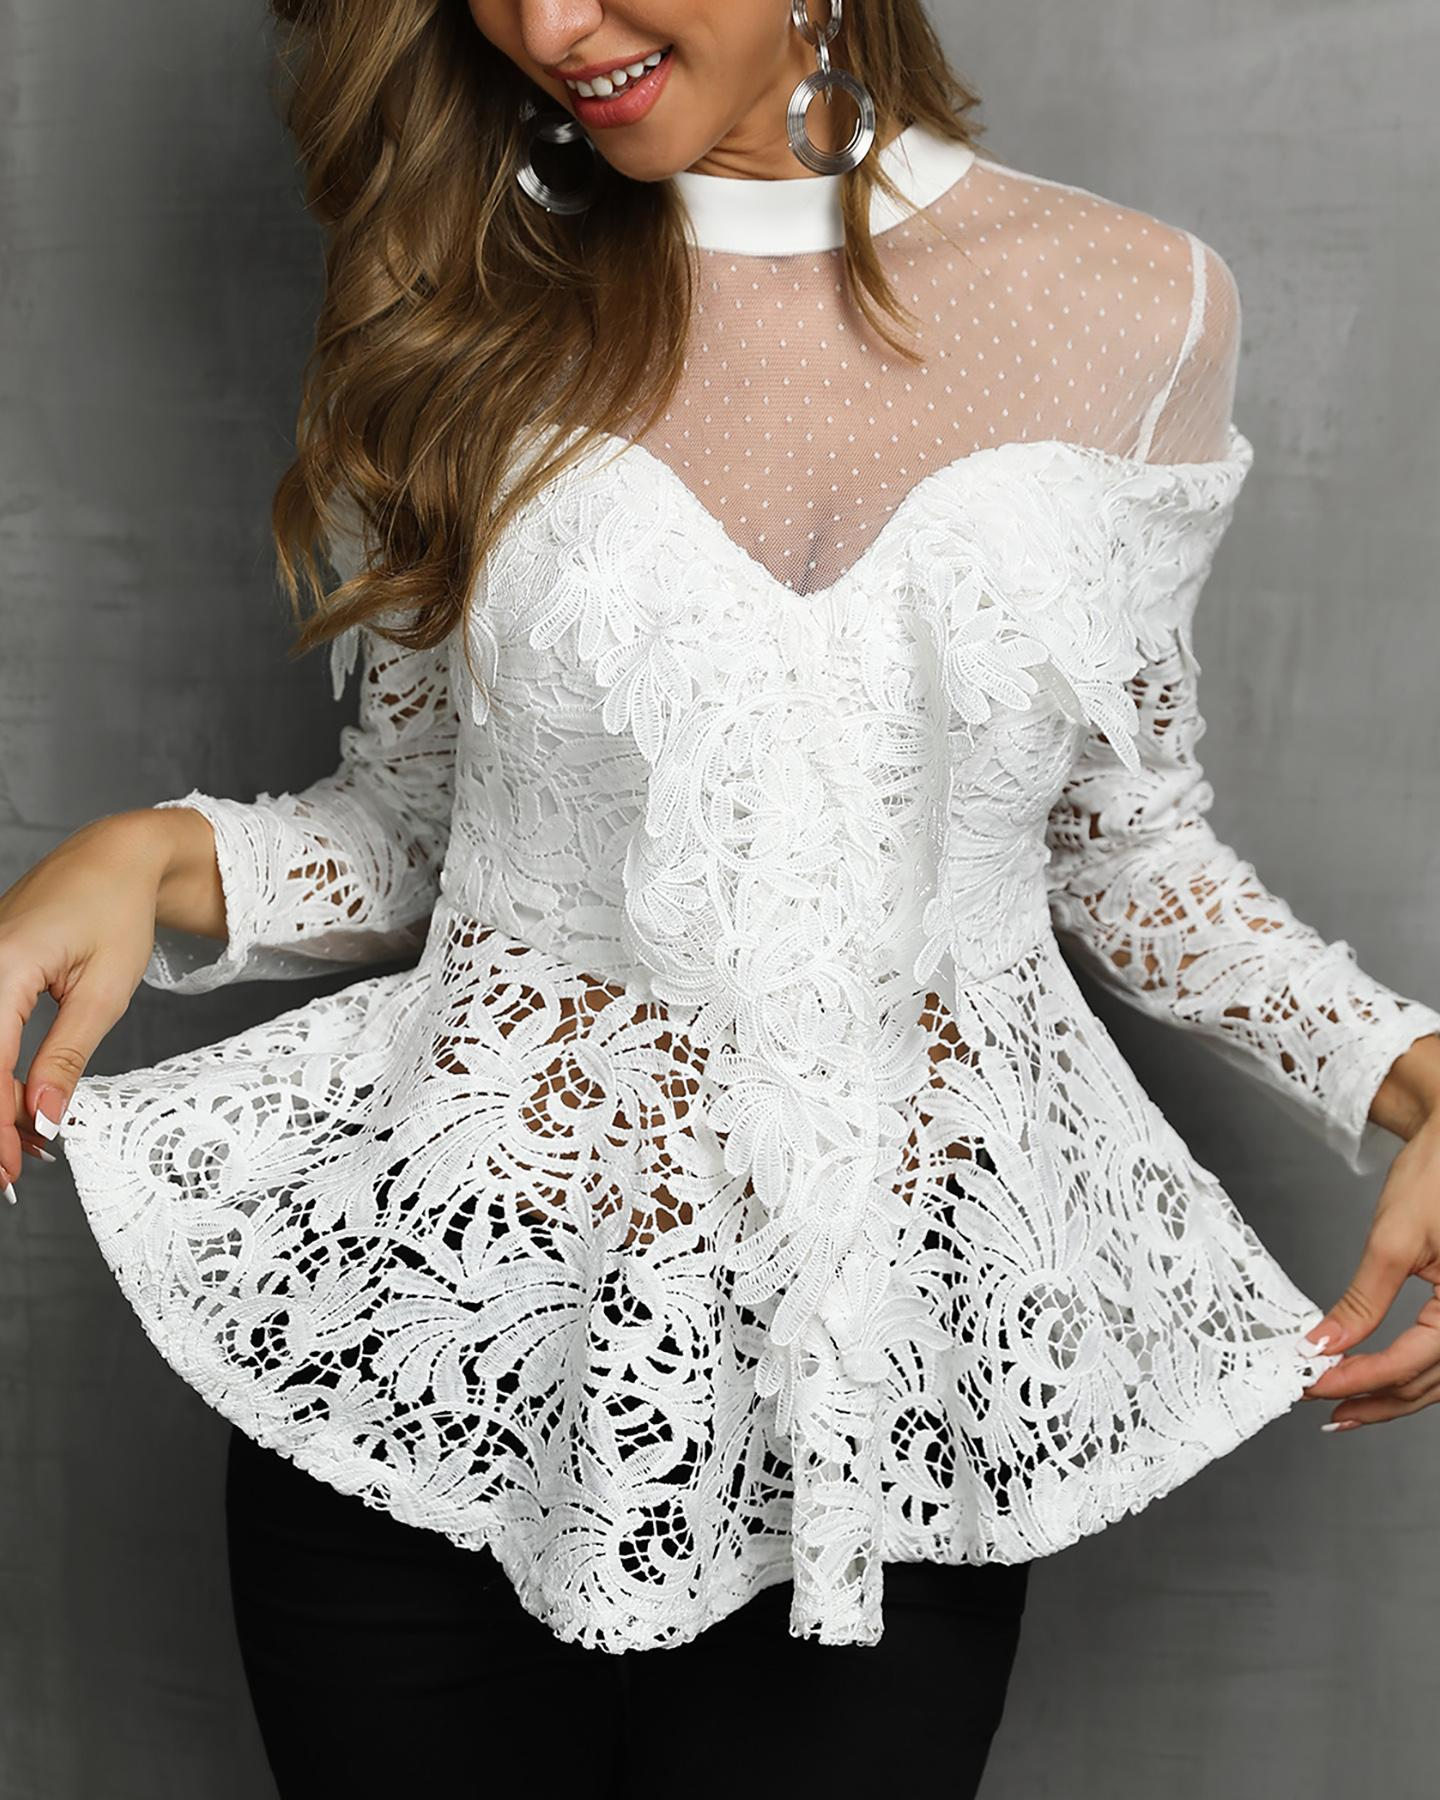 Sheer Mesh Floral Lace Ruffles Blouse